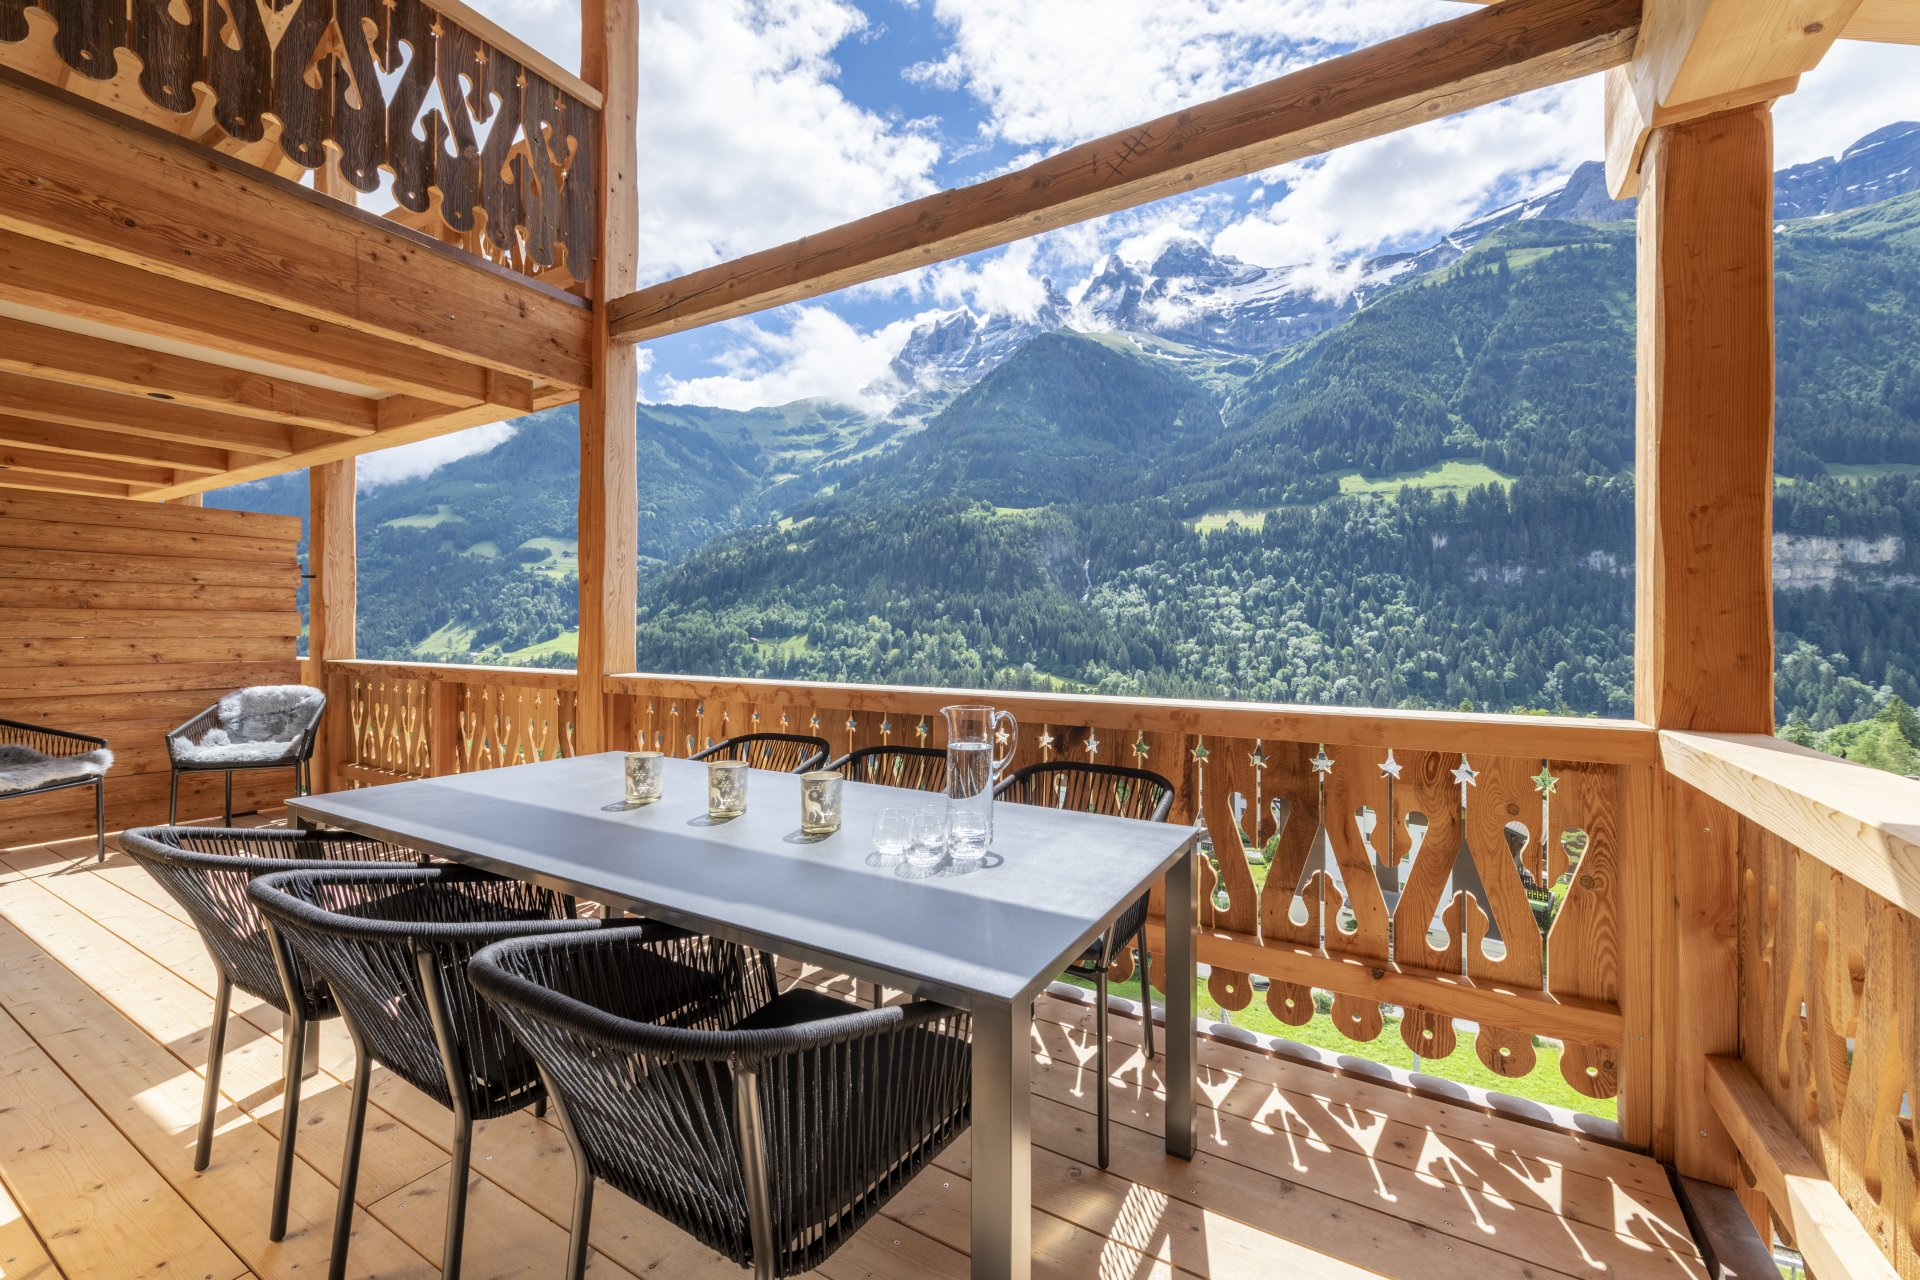 Wonderful apartment in the Swiss Alps Accommodation in Verbier St-Bernard